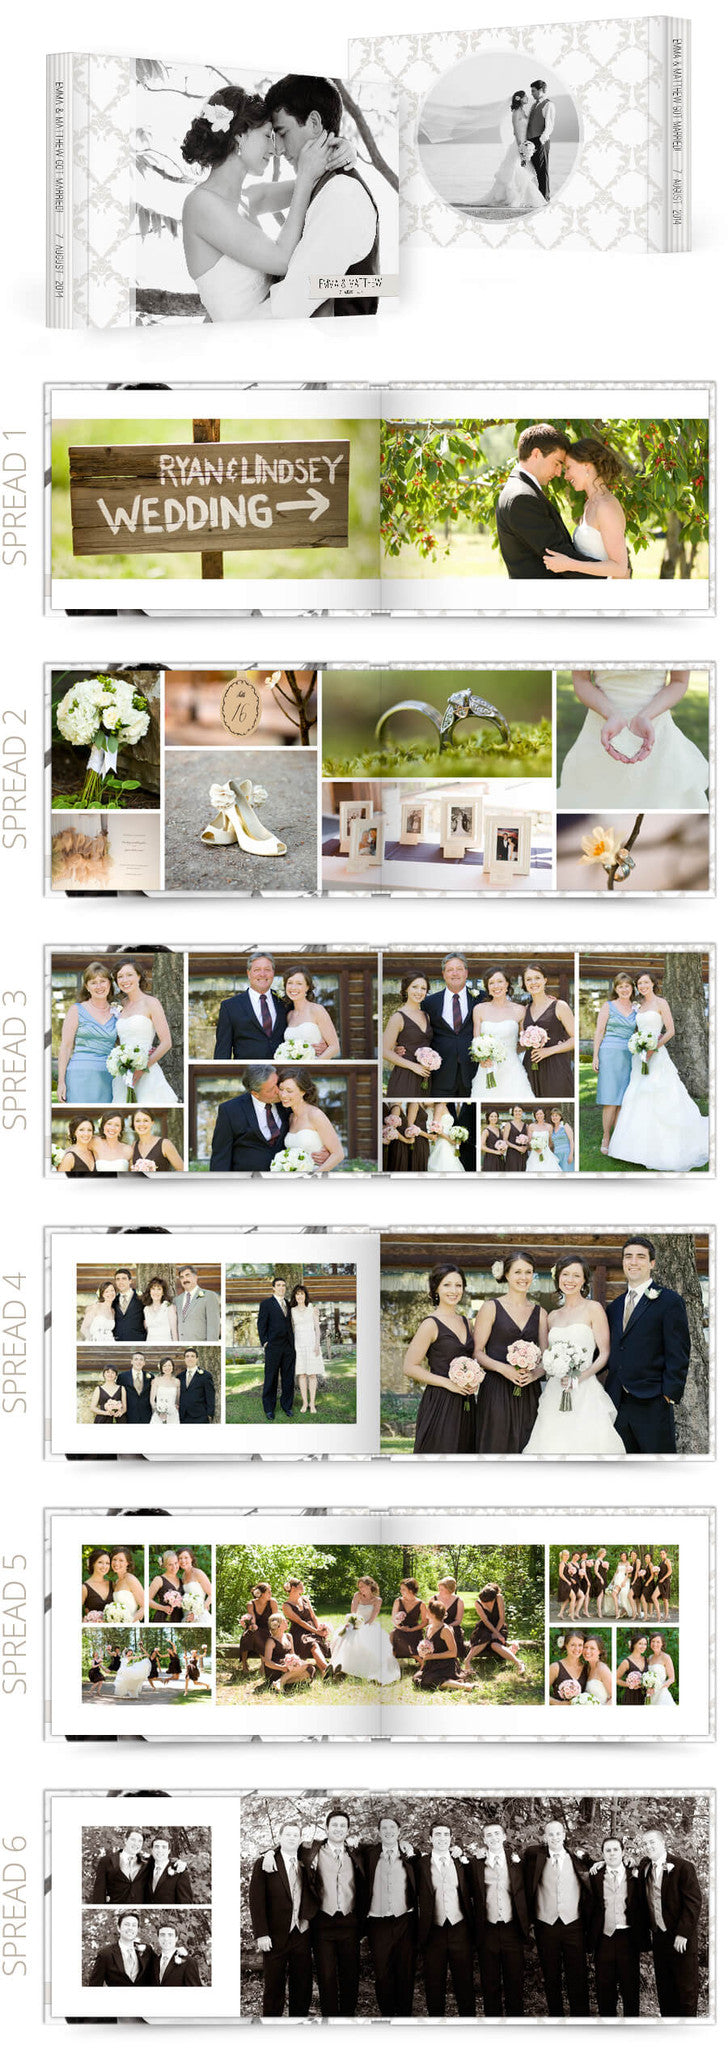 Petit Fleur 2 Wedding 12x8 Album Photoshop Templates